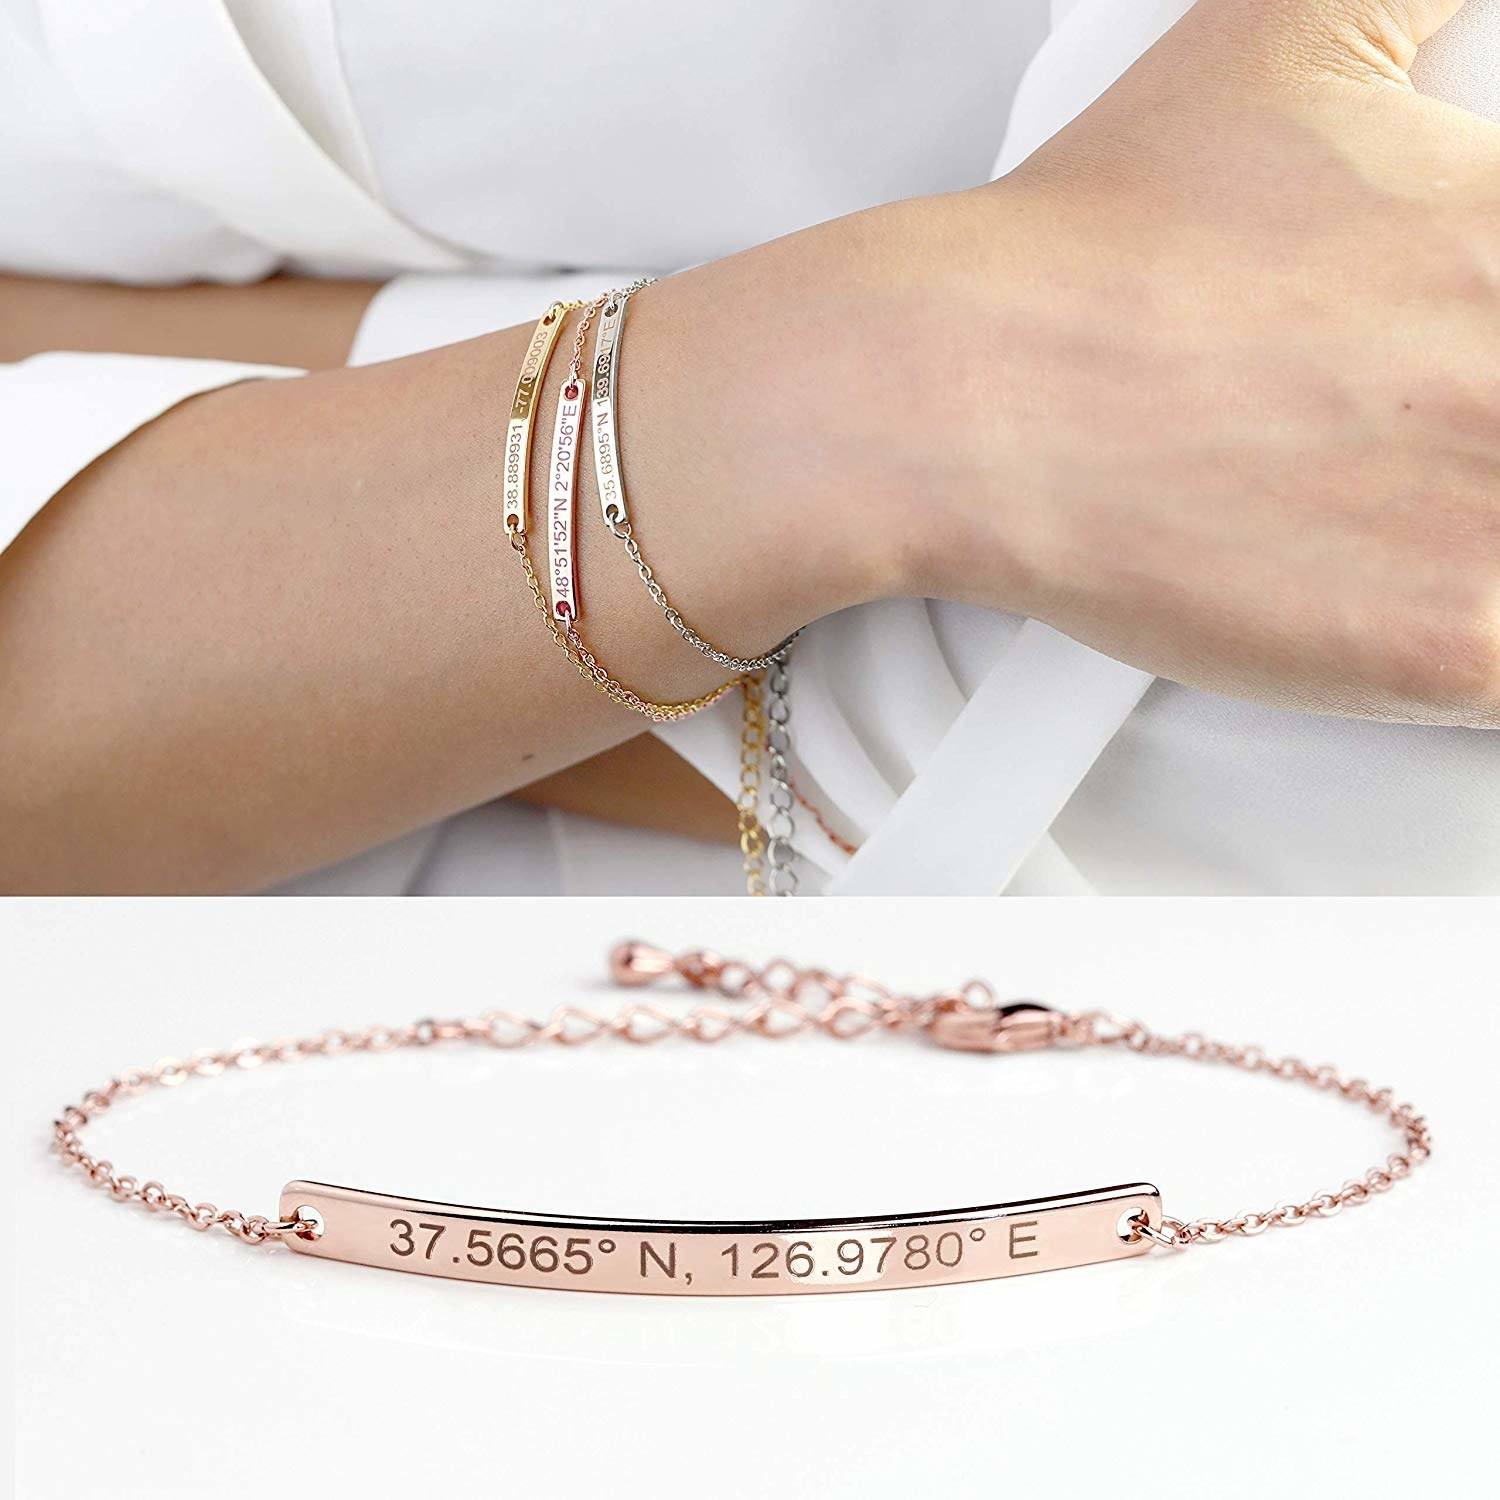 a model wearing the thin chain bracelet with a bar in the middle featuring coordinates